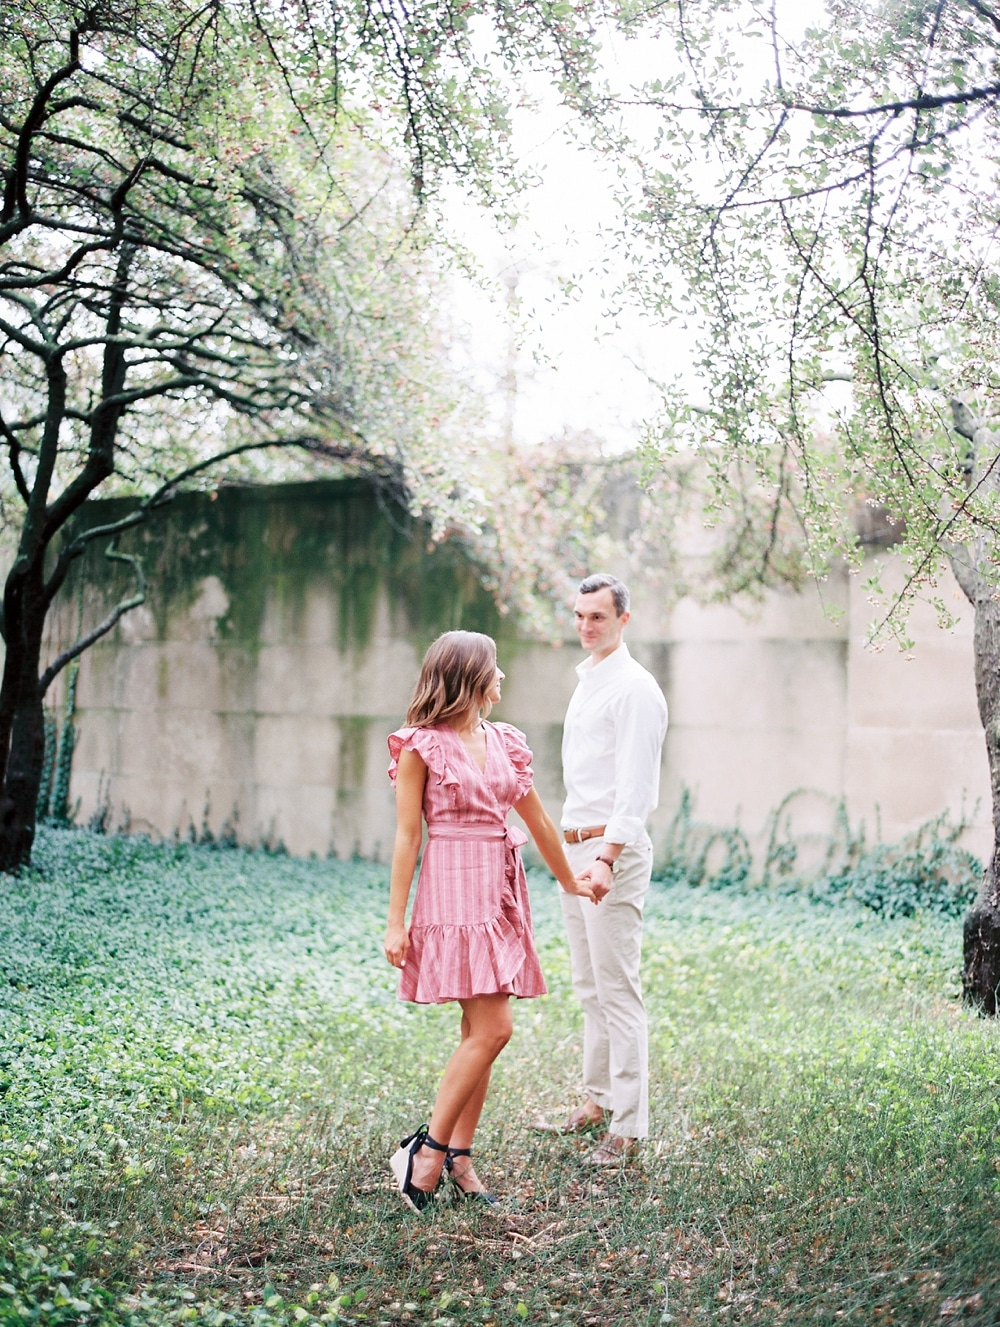 Kristin-La-Voie-Photography-chicago-art-institute-engagement-wedding-photos-78